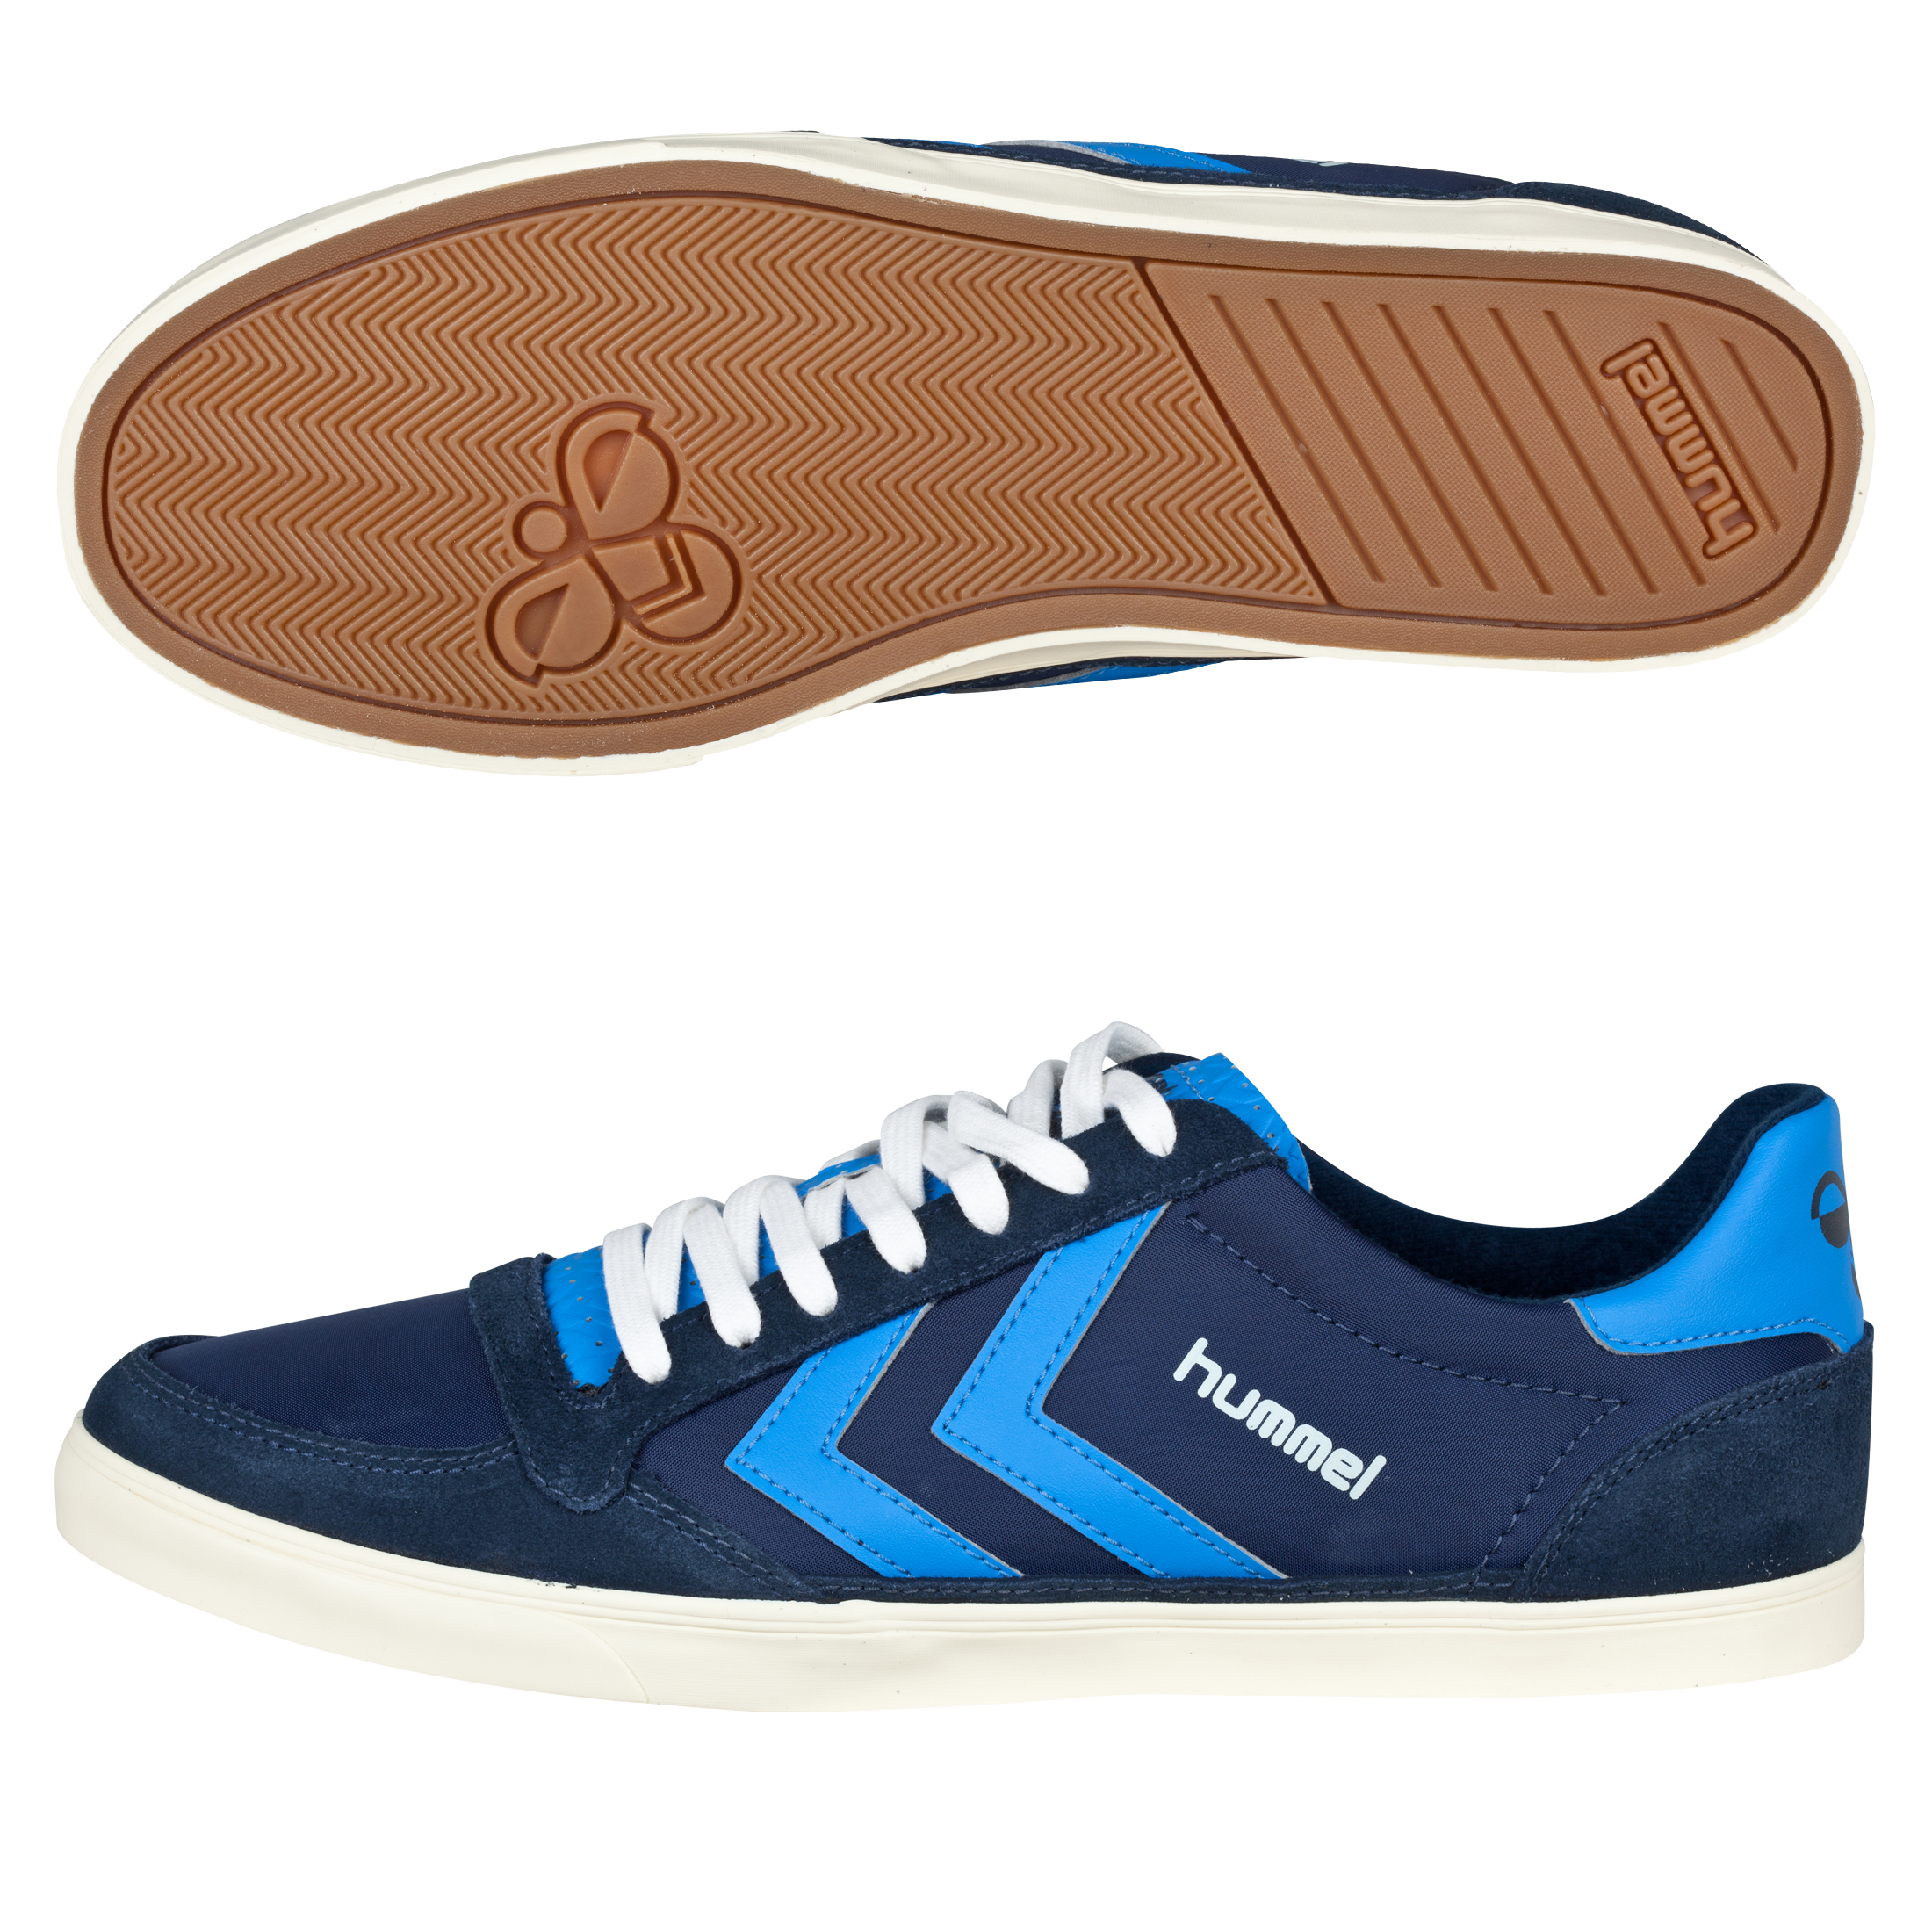 Hummel Slimmer Stadil Retro Low Trainers - Dress Blue/Brill Blue/Pristine